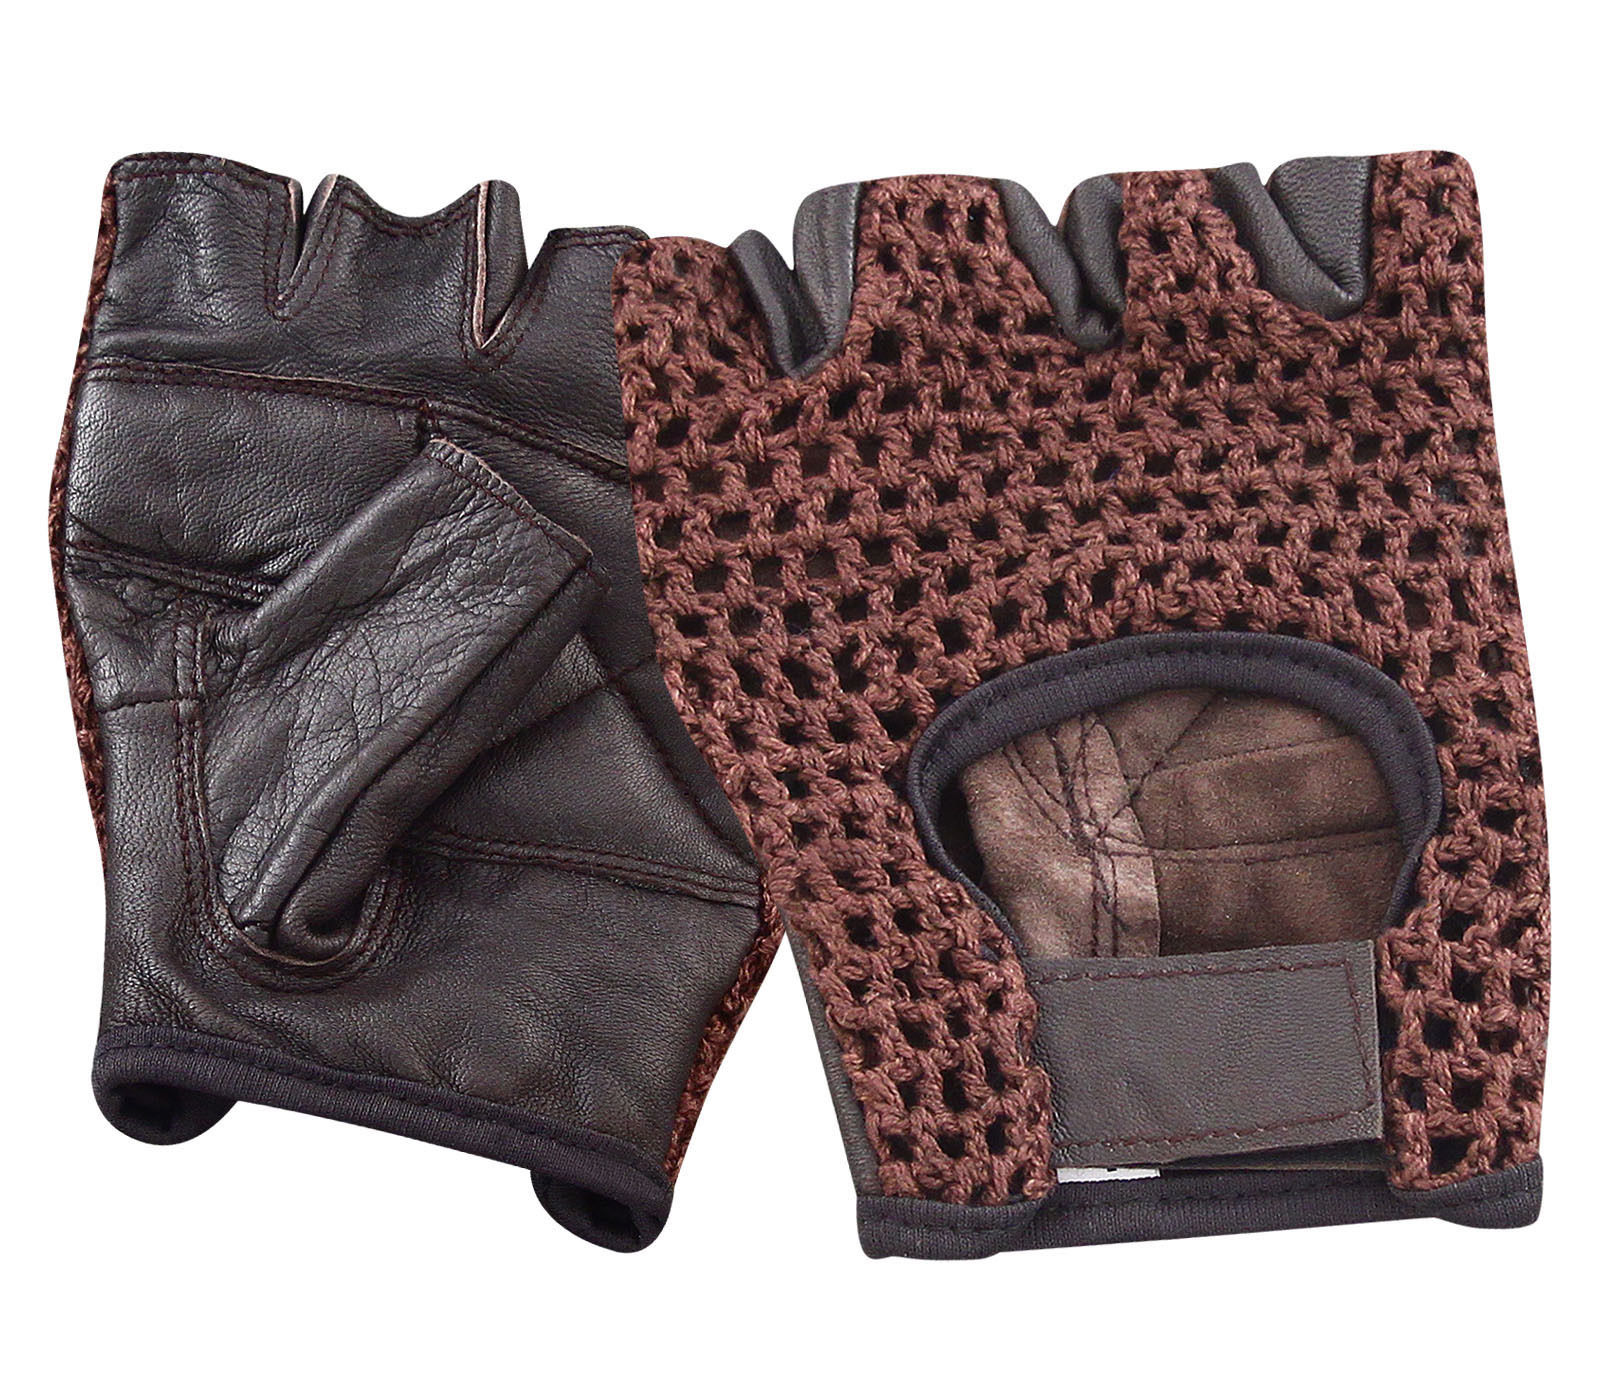 Driving gloves yahoo answers -  2 49